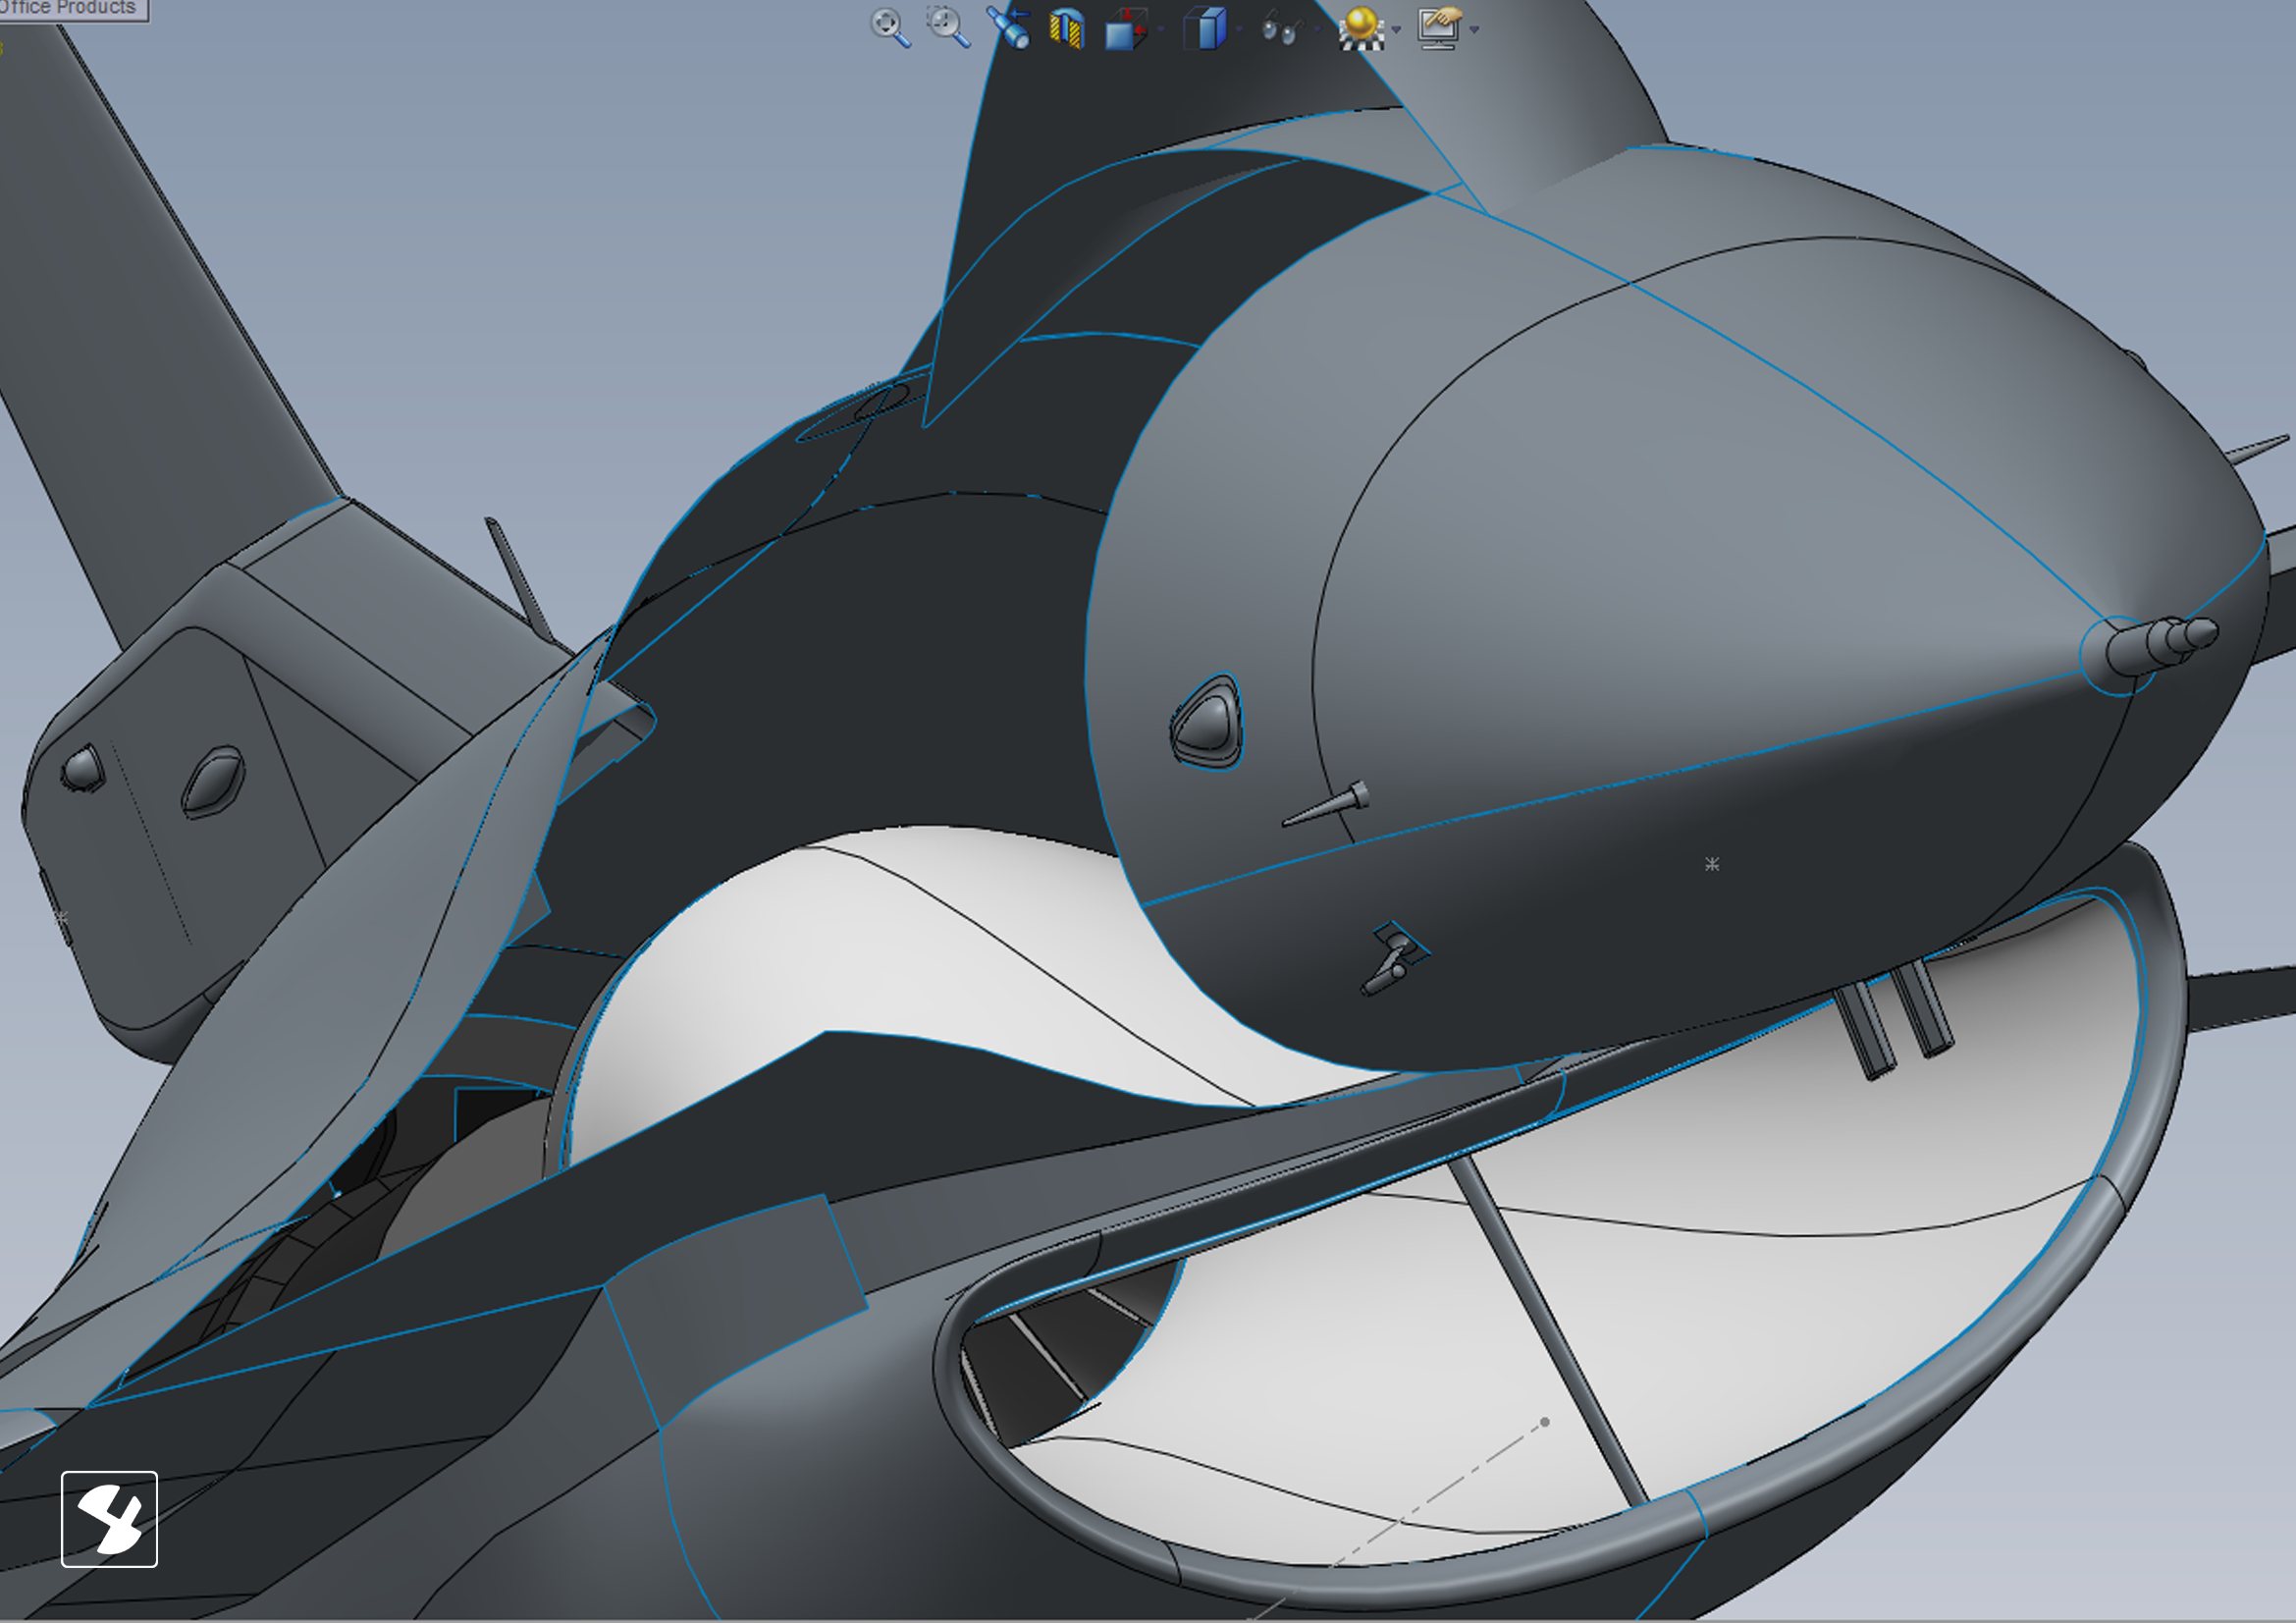 F-16 Fighting Falcon | High Precision CAD Model with SolidWorks